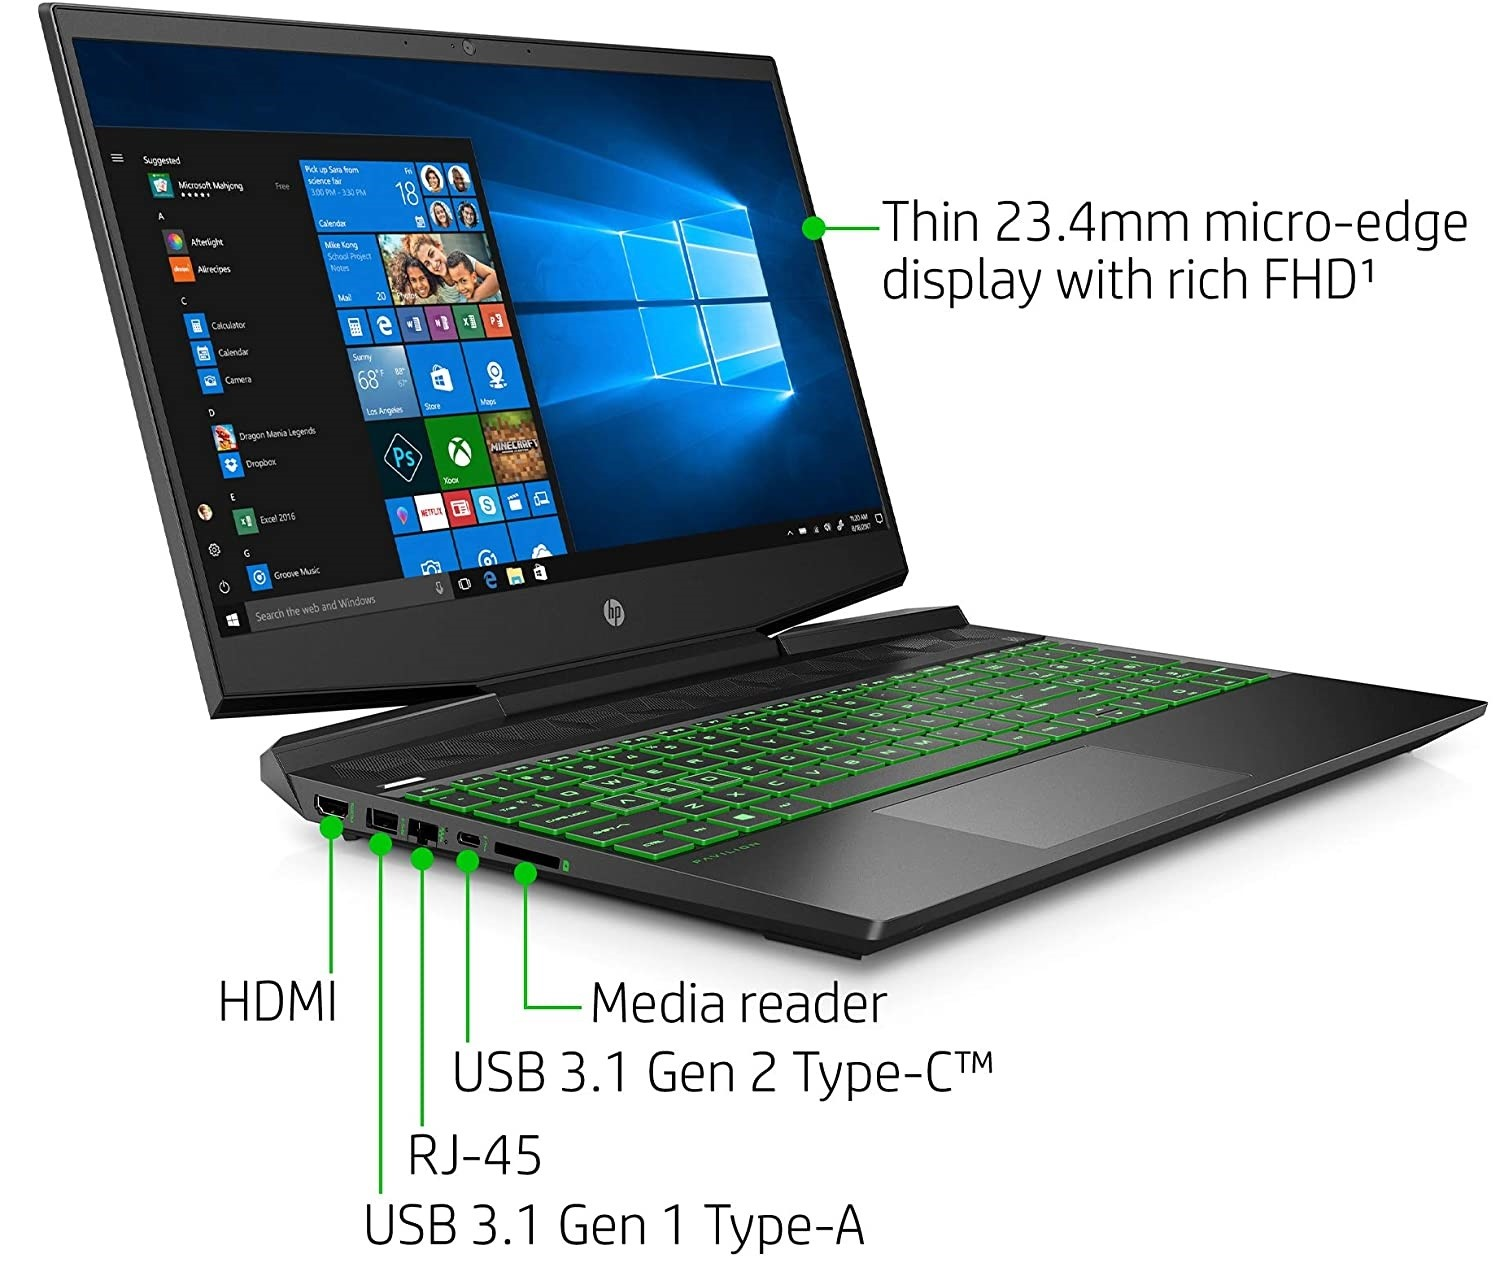 Input ports included on the HP Pavilion 15 gaming laptop